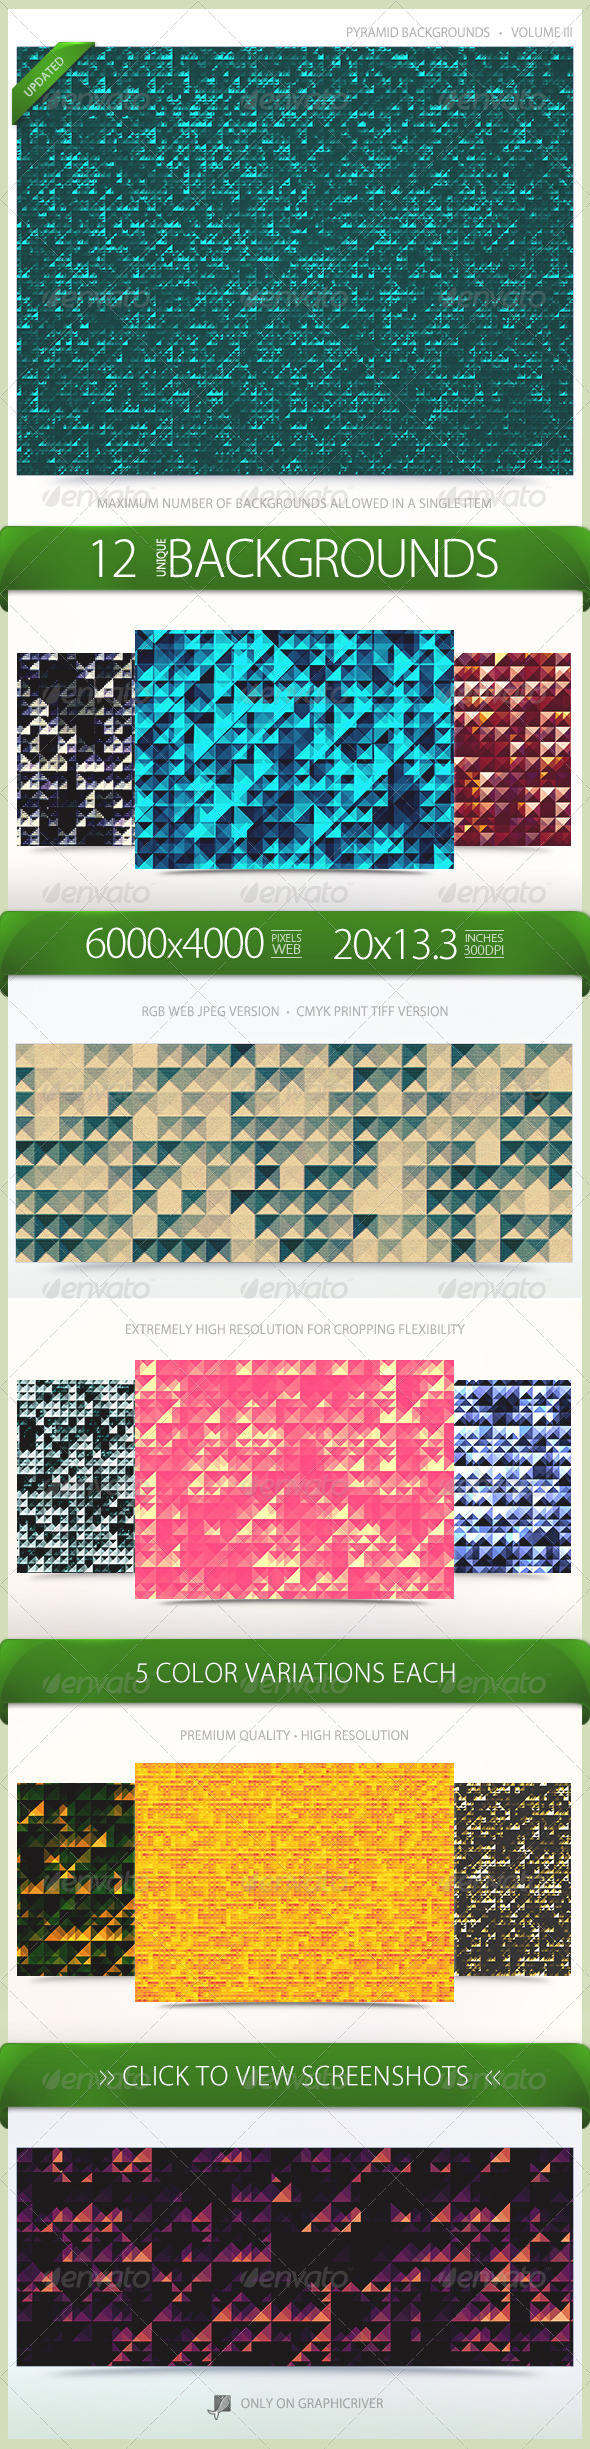 Pyramid Backgrounds Volume 3 - Patterns Backgrounds